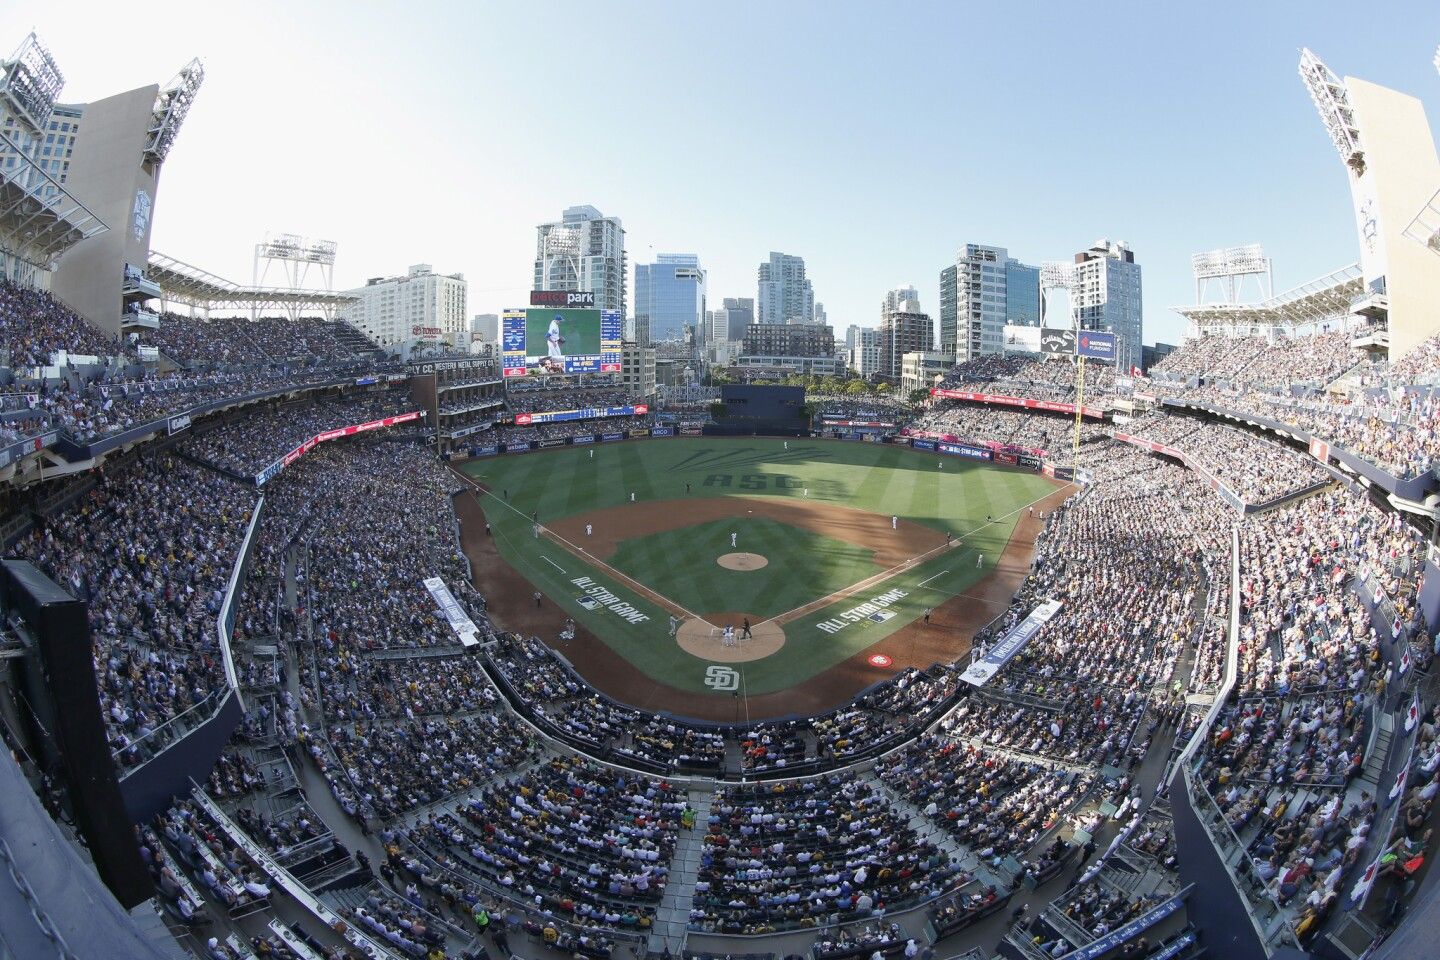 SAN DIEGO, CA - JULY 12: A view of the ball park during the 87th Annual MLB All-Star Game at PETCO Park on July 12, 2016 in San Diego, California. (Photo by Todd Warshaw/Getty Images) ** OUTS - ELSENT, FPG, CM - OUTS * NM, PH, VA if sourced by CT, LA or MoD **